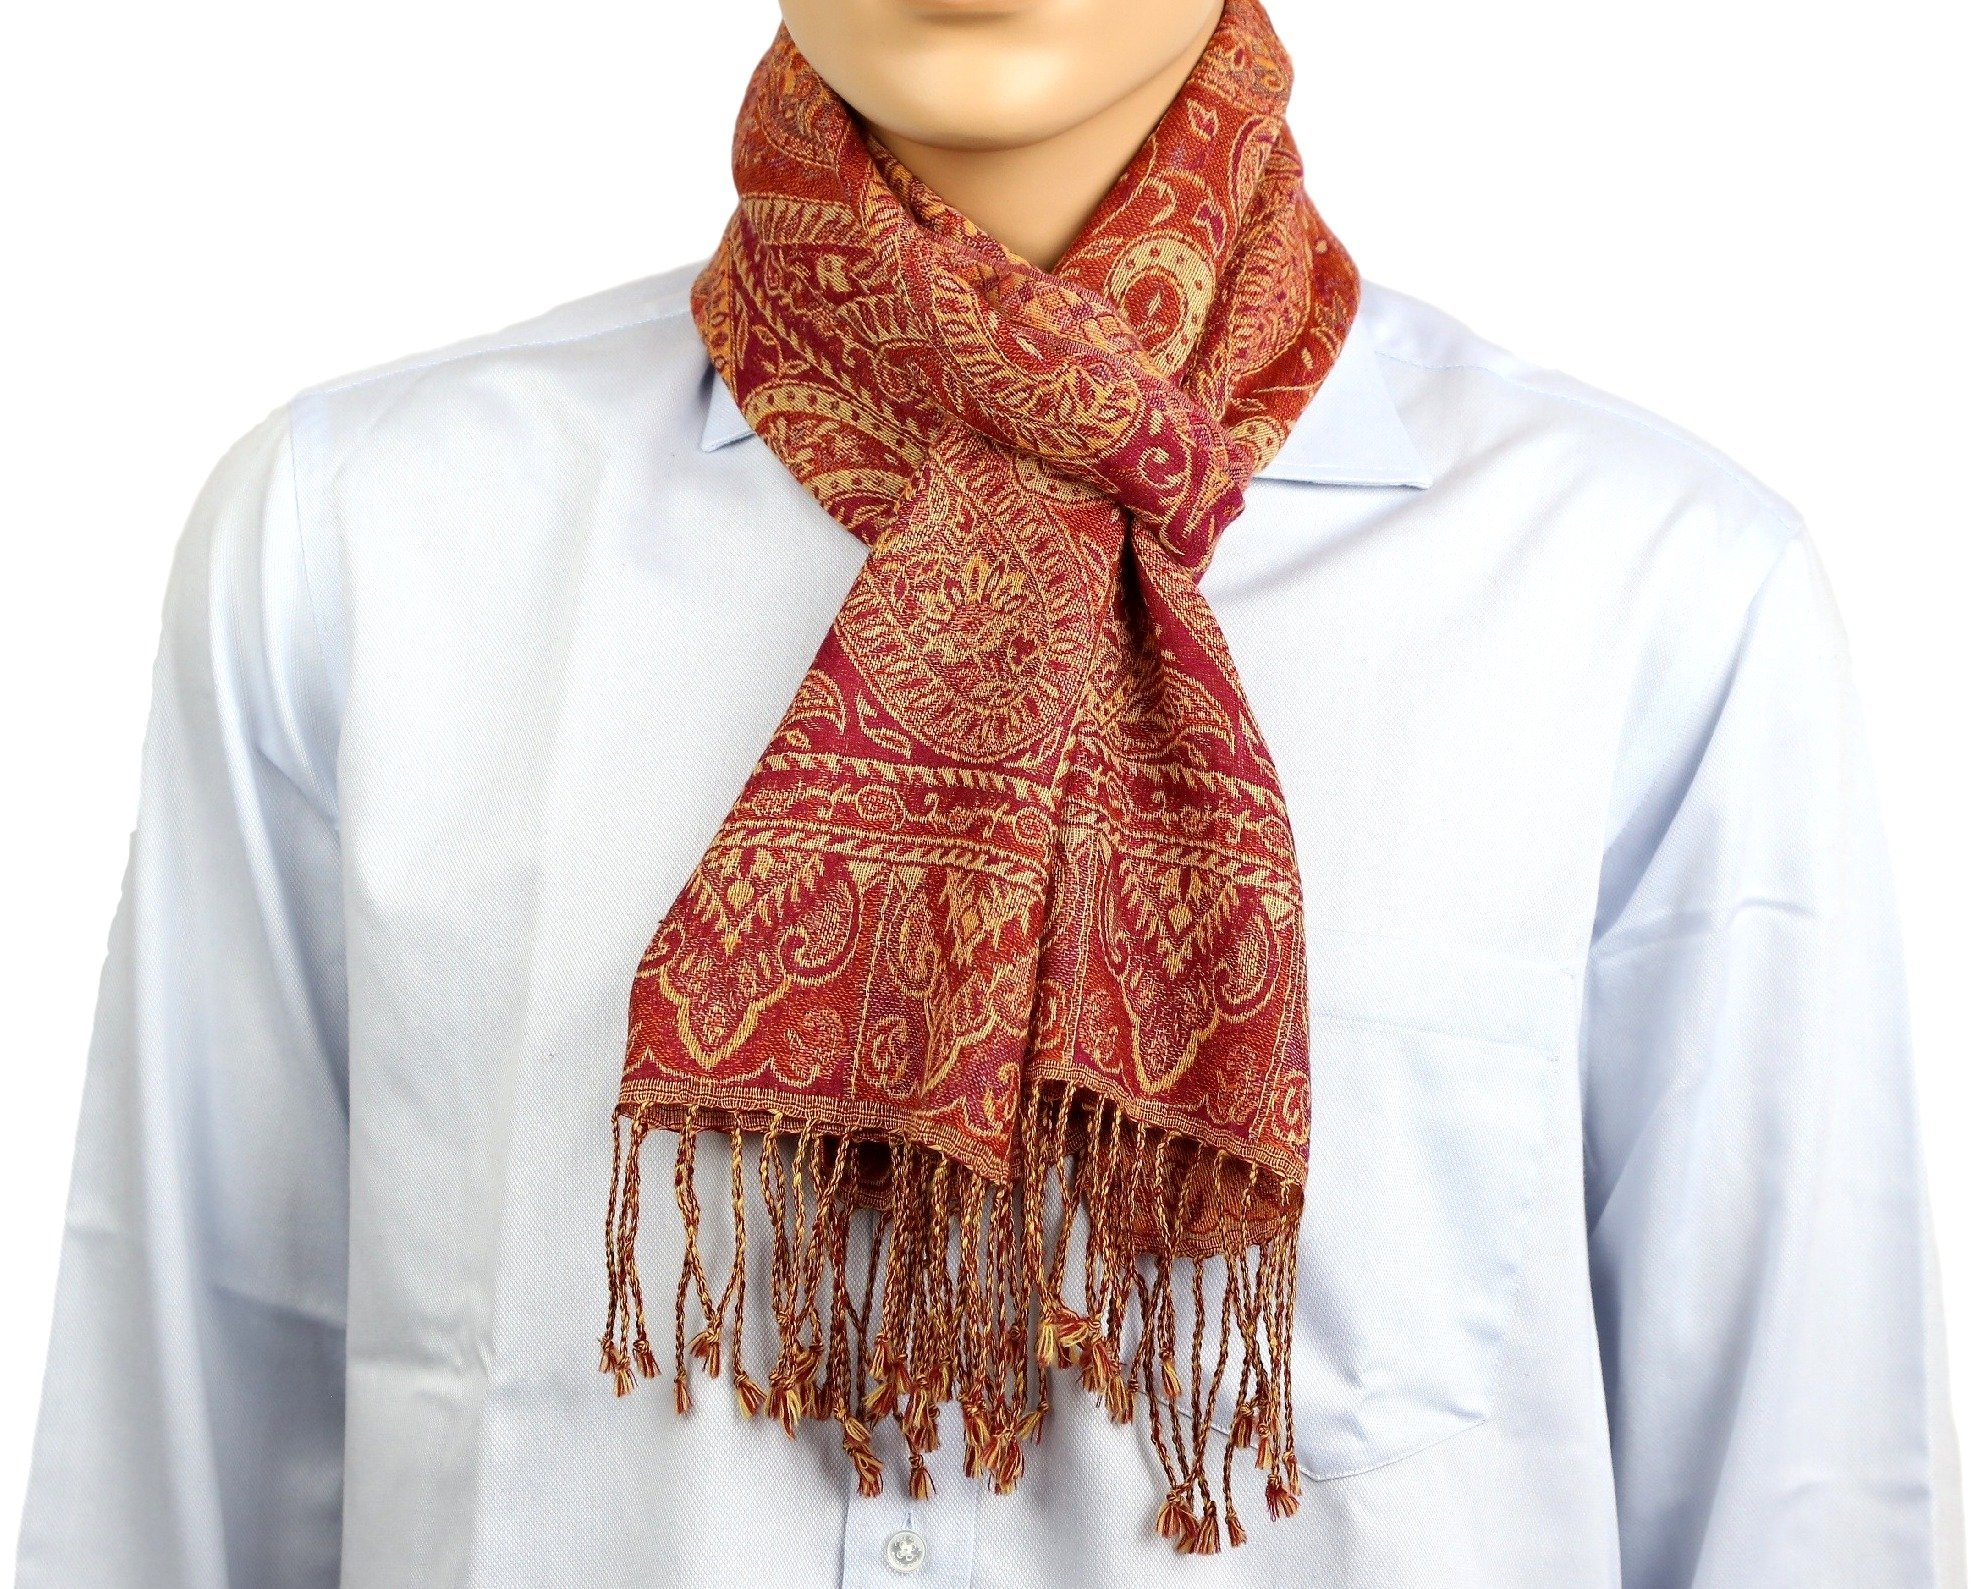 Wool Scarf Men Neck Accessories Gifts Indian Dress Paisley Design,13 X 60 Inch